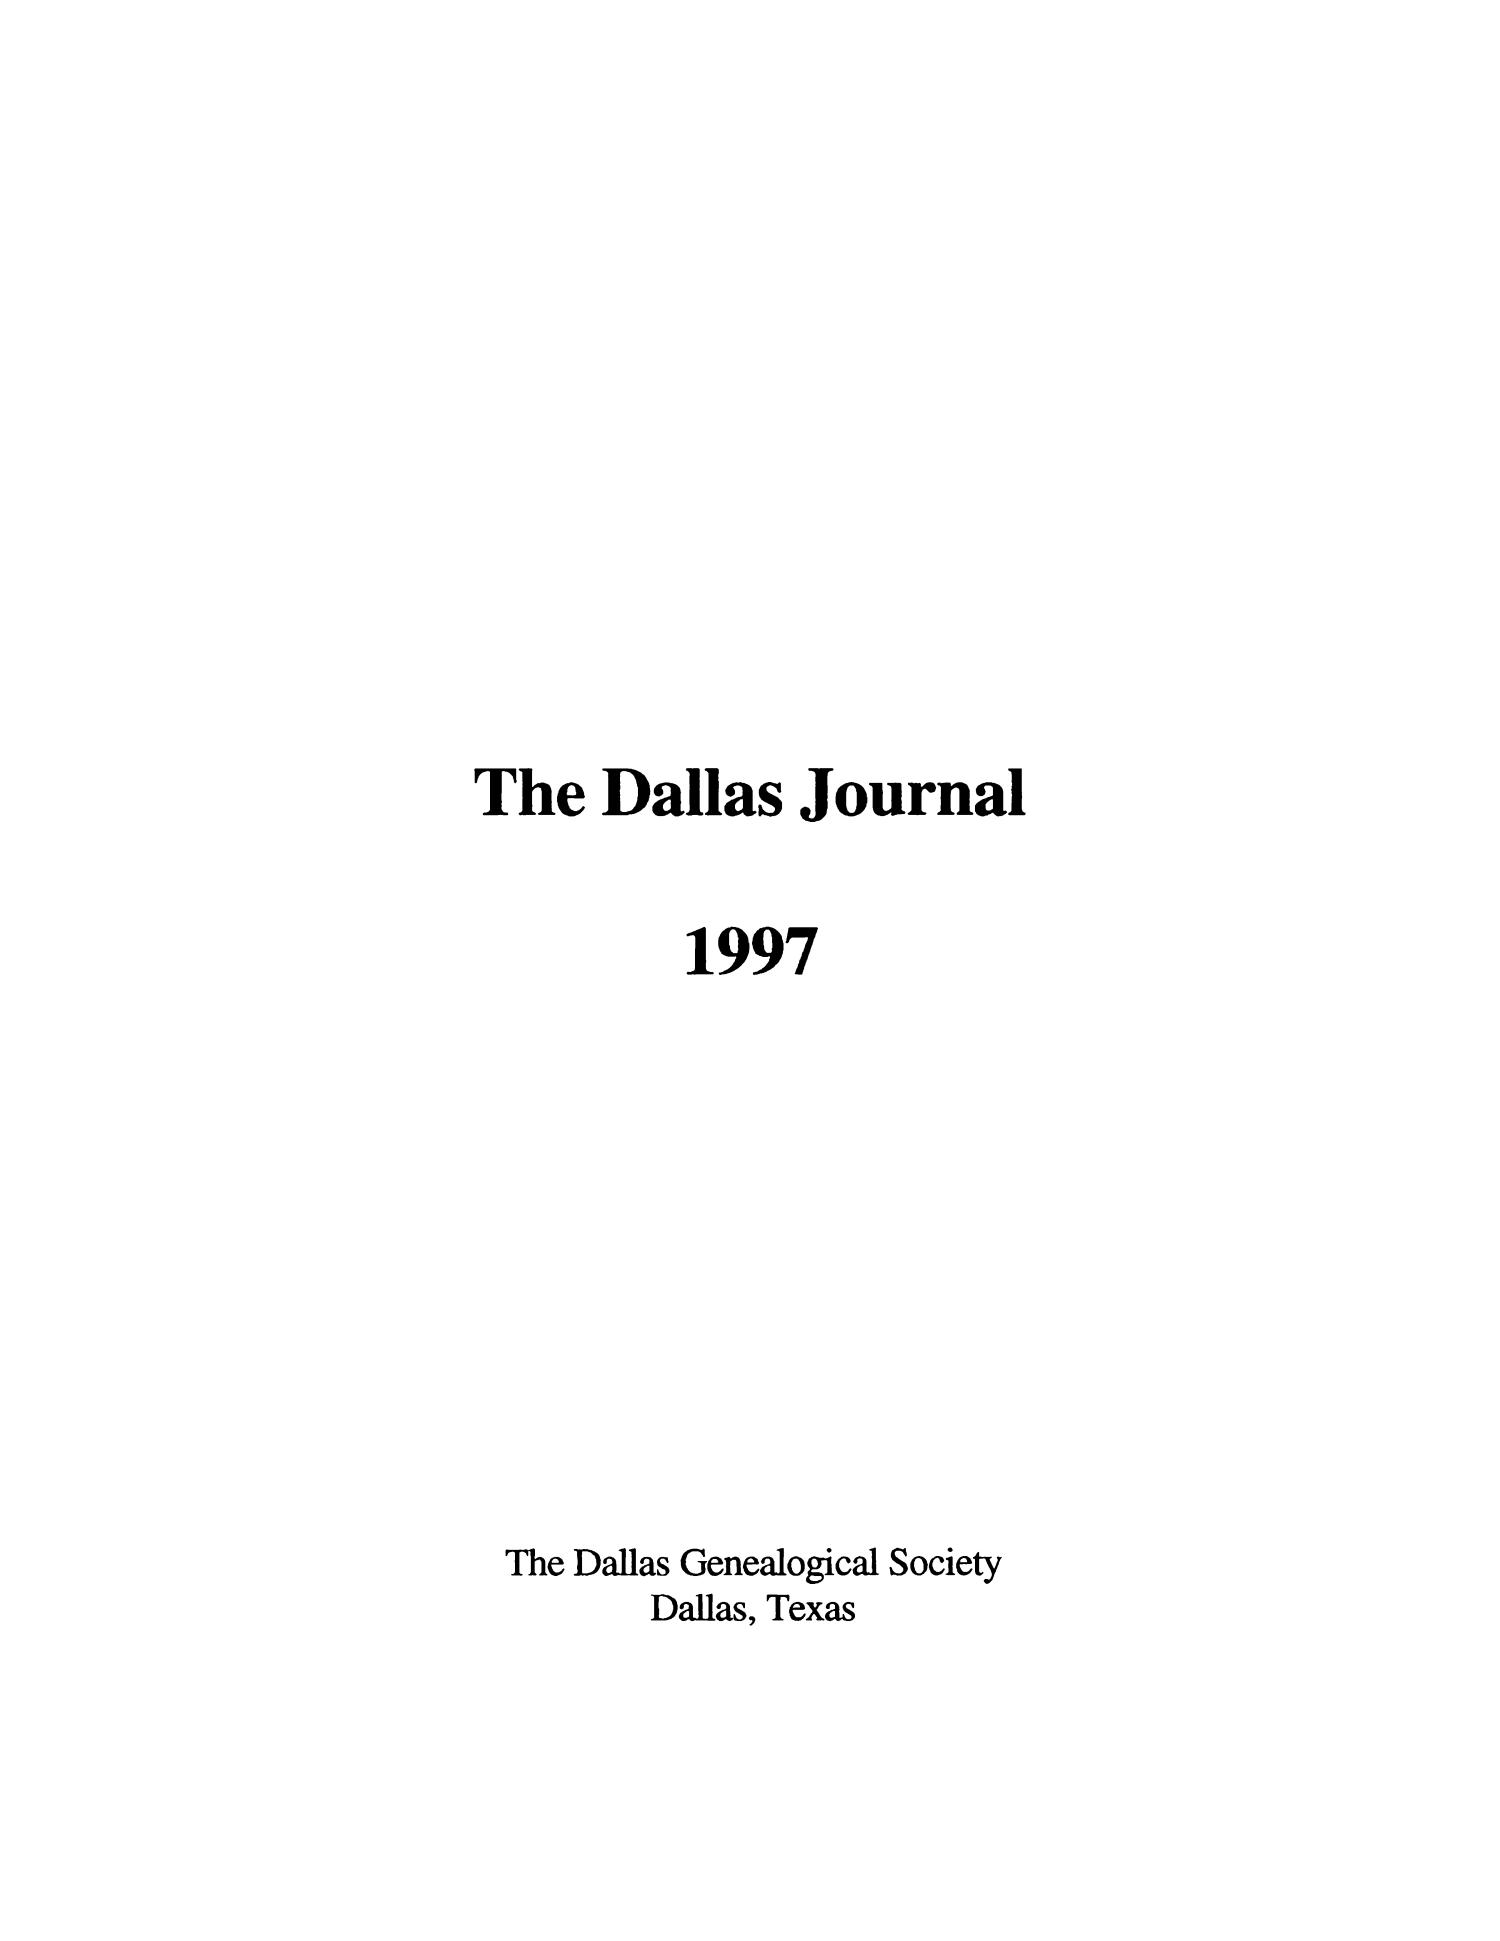 The Dallas Journal, Volume 43, 1997                                                                                                      Title Page